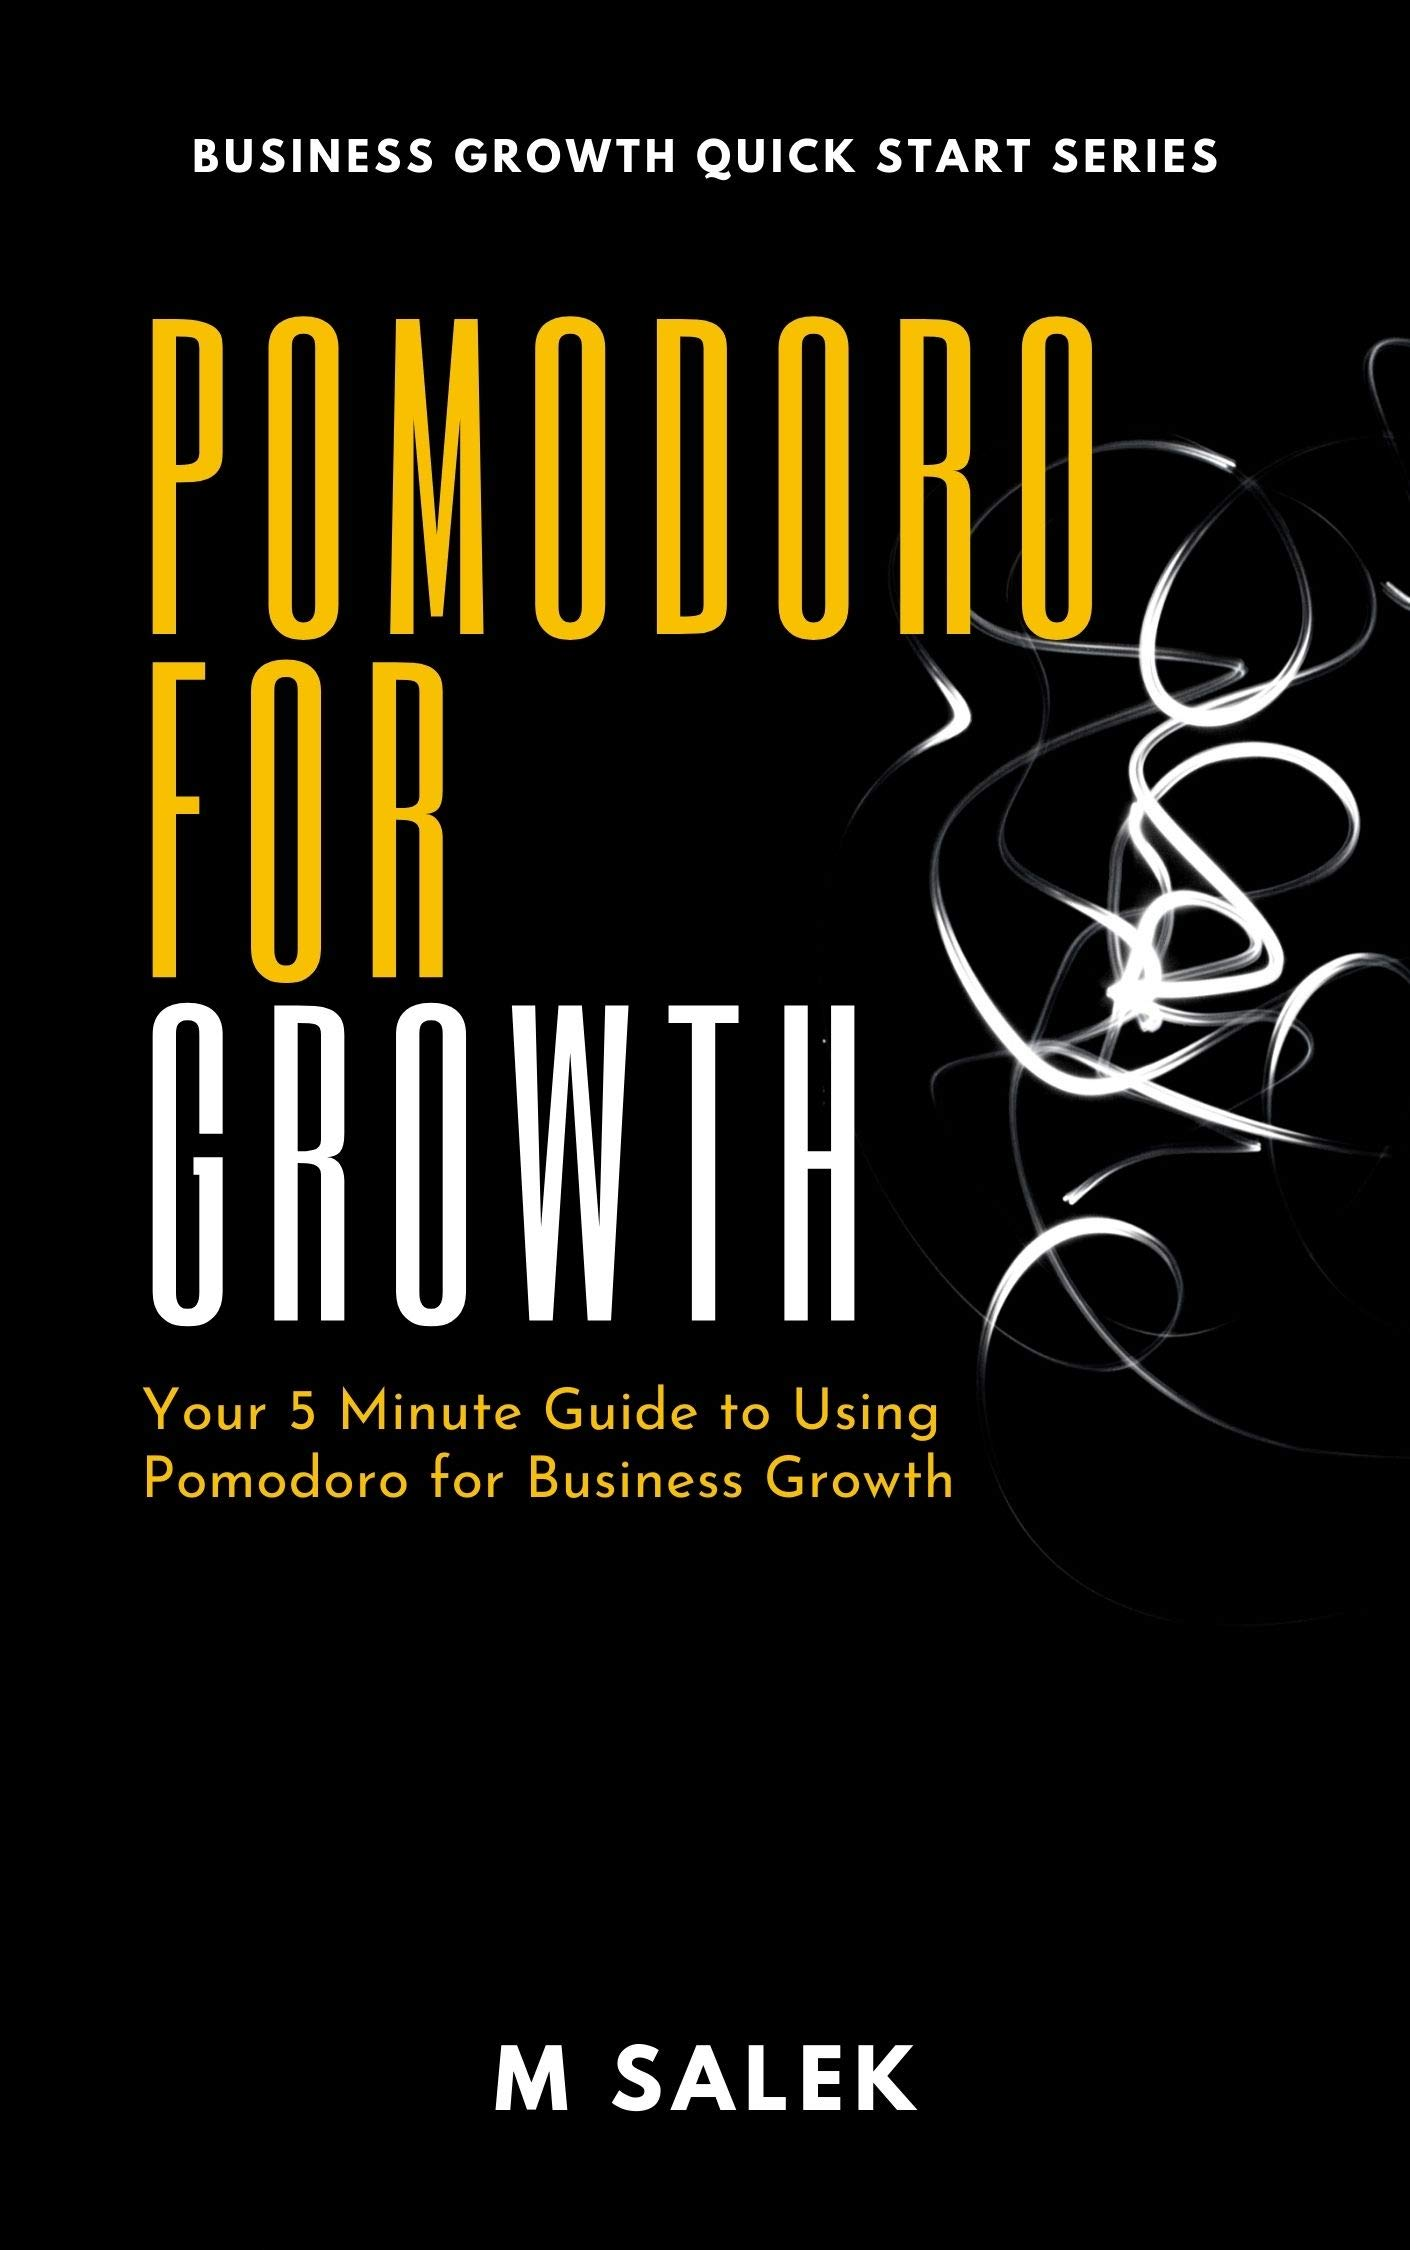 Pomodoro for Growth: Your 5 Minute Guide to Using Pomodoro for Business Growth (Business Growth Quick Start Series Book 23)